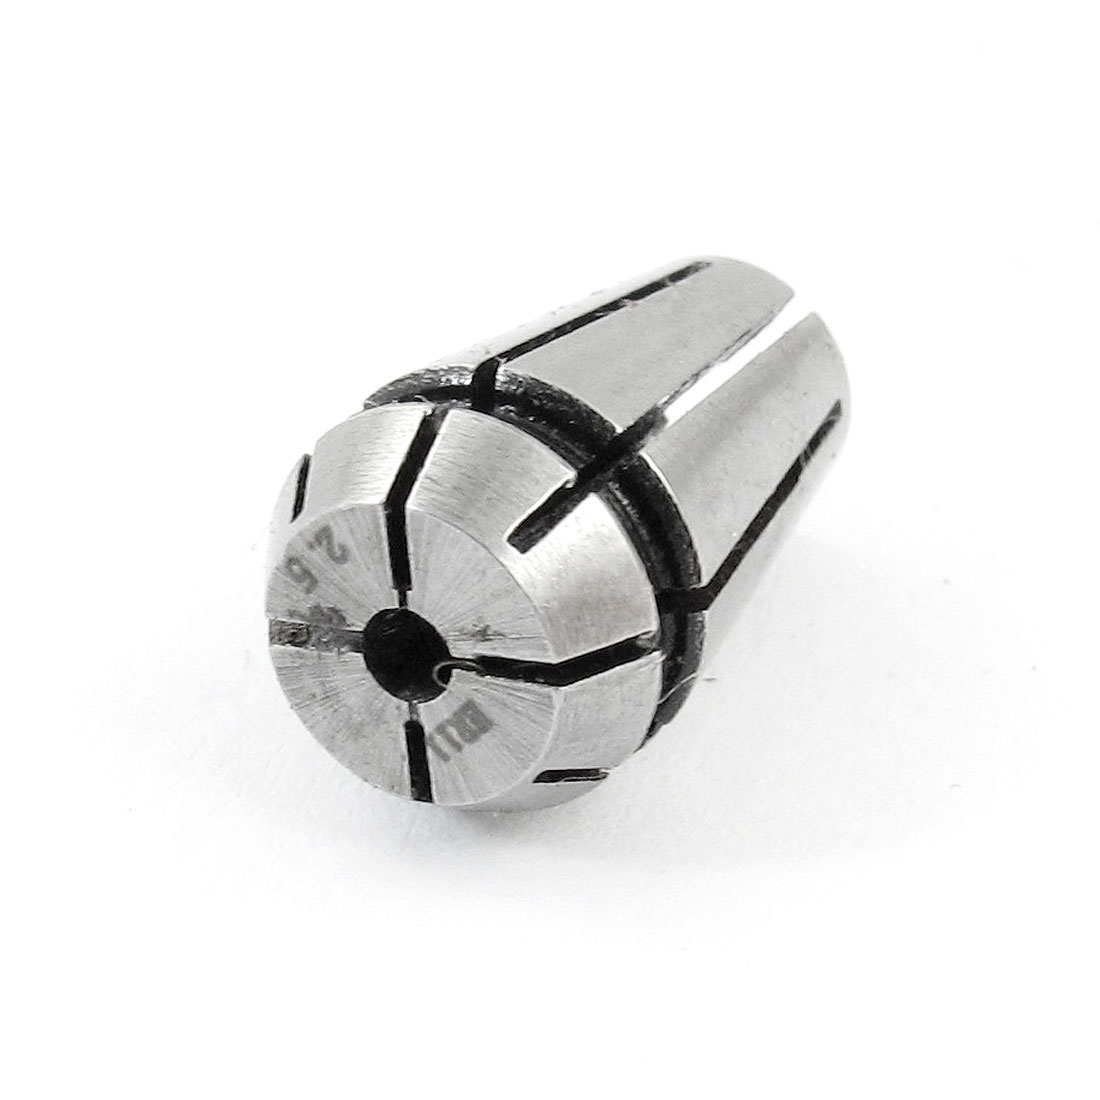 Clamping Range 2.5mm ER11 Precision Spring Collet Reaming Part